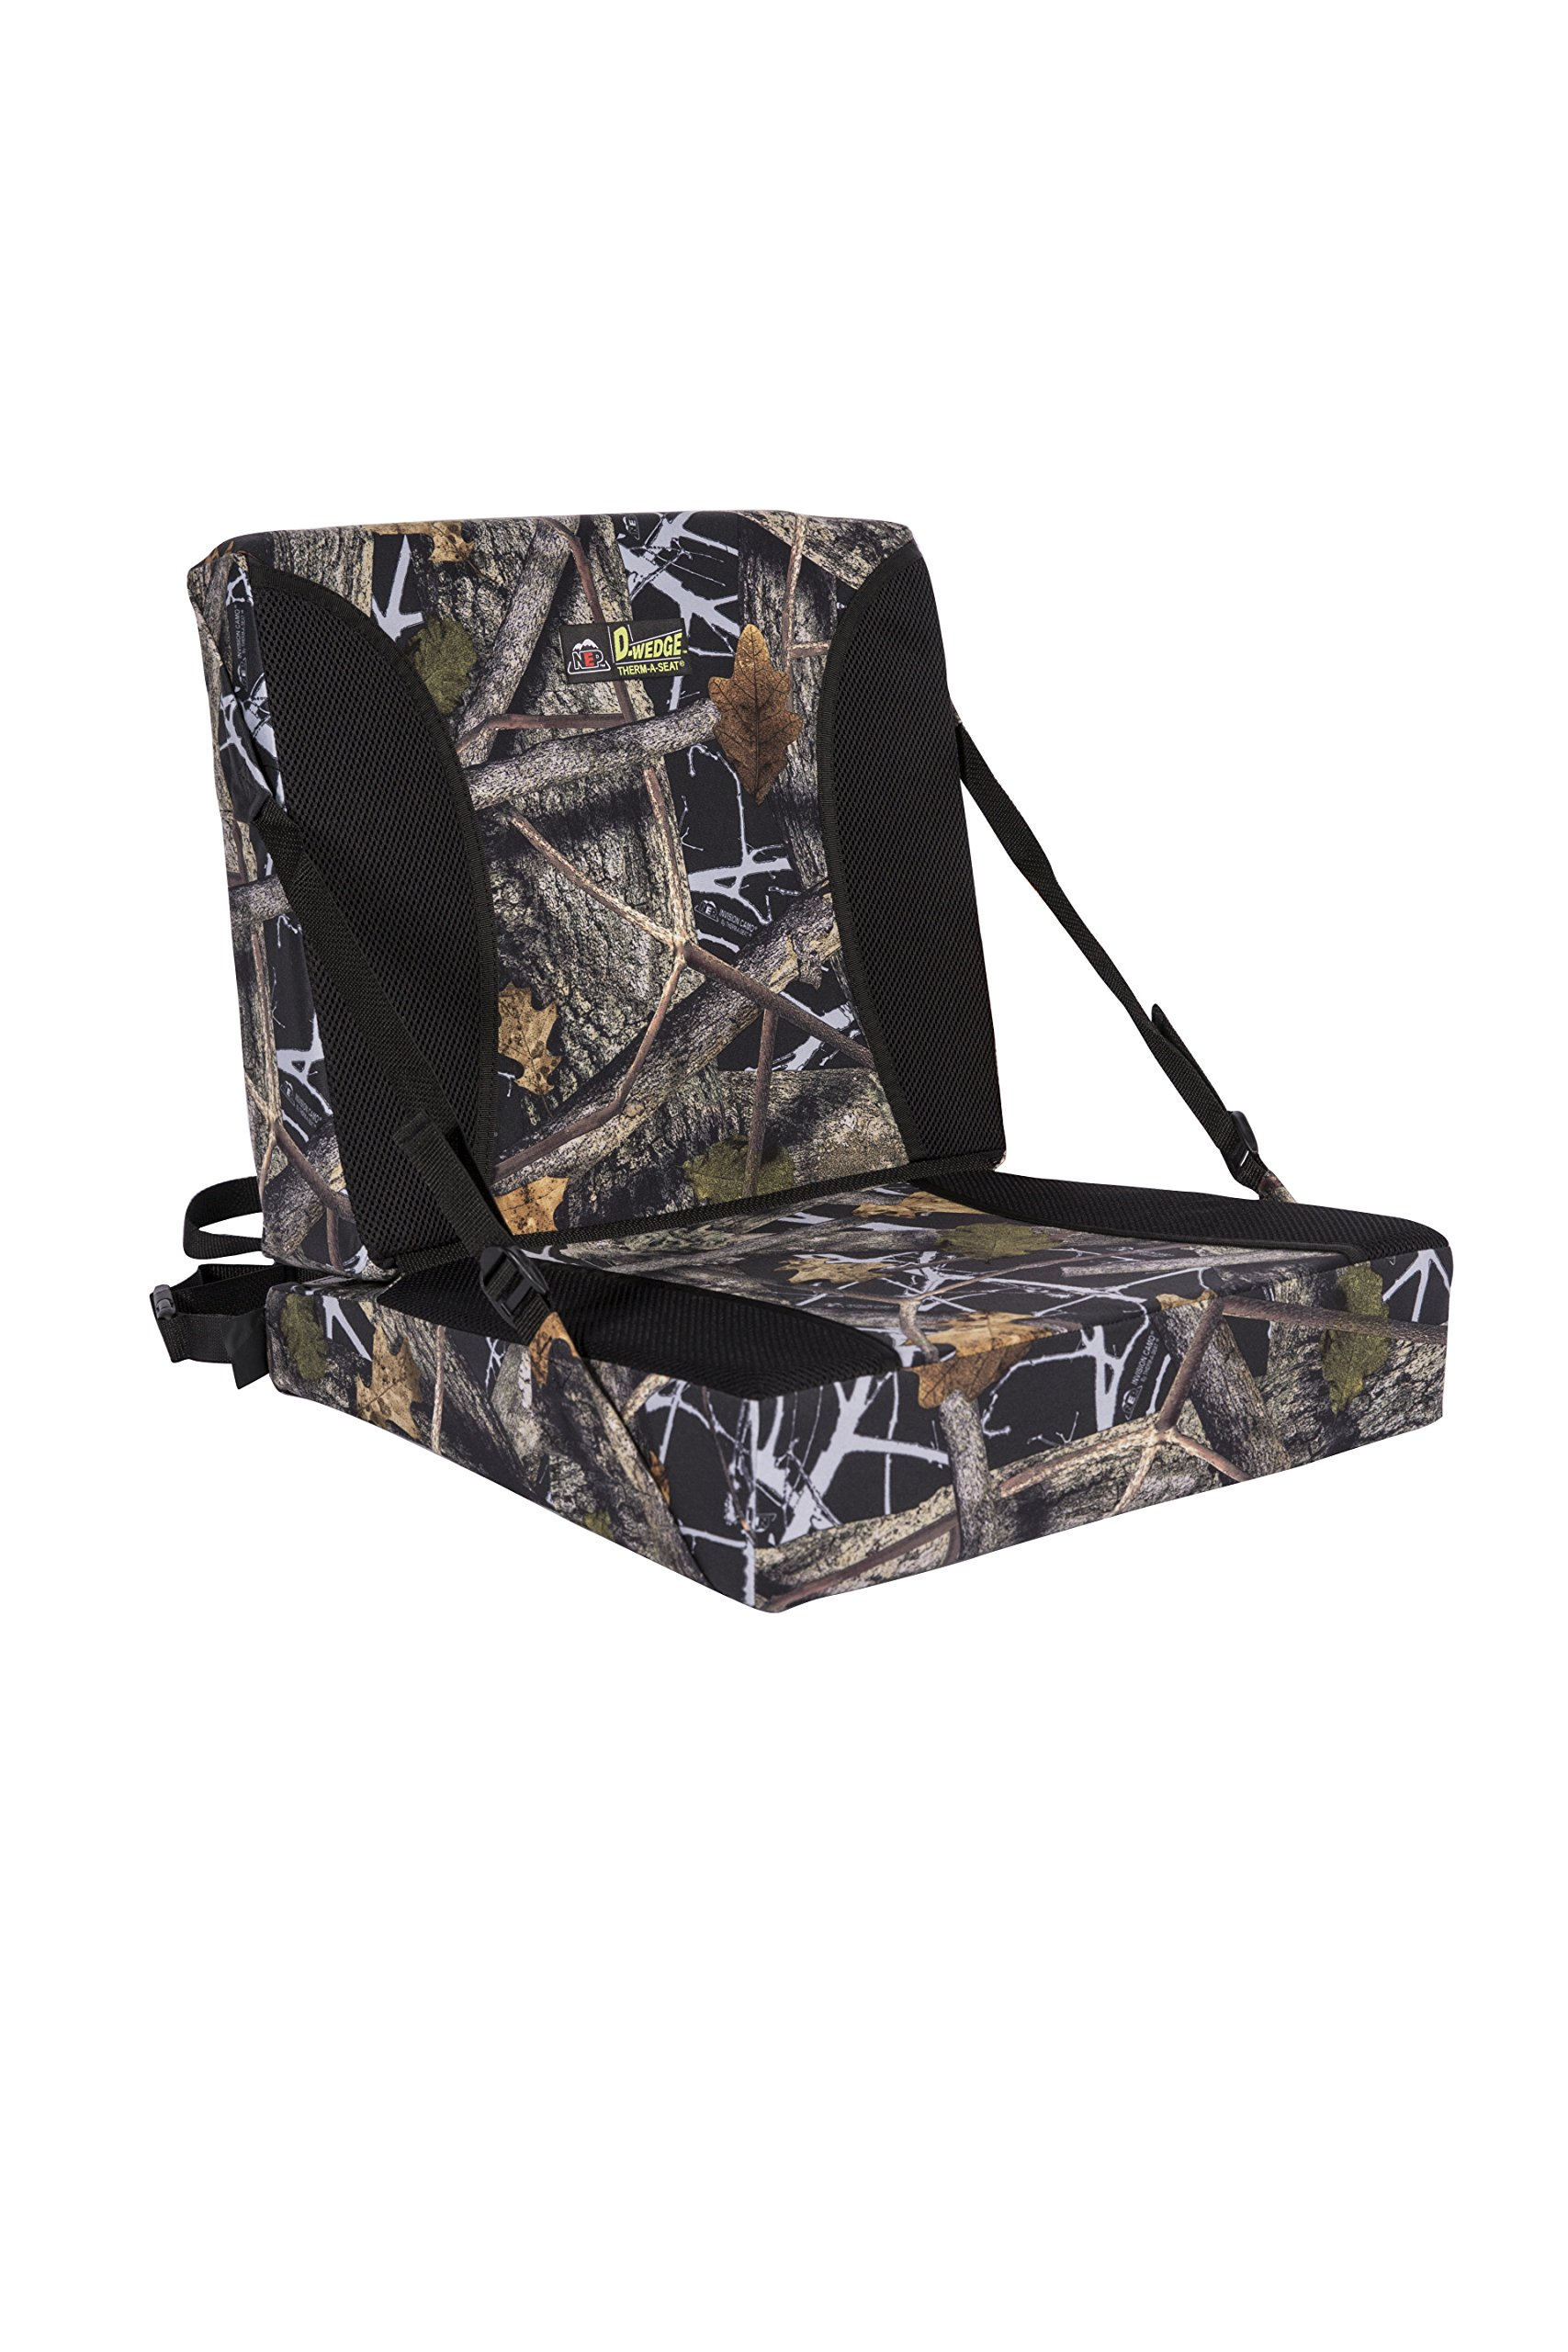 Northeast Products Supreme D-WEDGE ThermaSeat Self-Supporting Chair Hunting Seat Cushion, Invision Camo, Full Bottom: 17 x 18-Inch Wide x (2 x 4-Inch) - Full Back: 18 x 16-Inch Tall x (2 x 4-Inch)